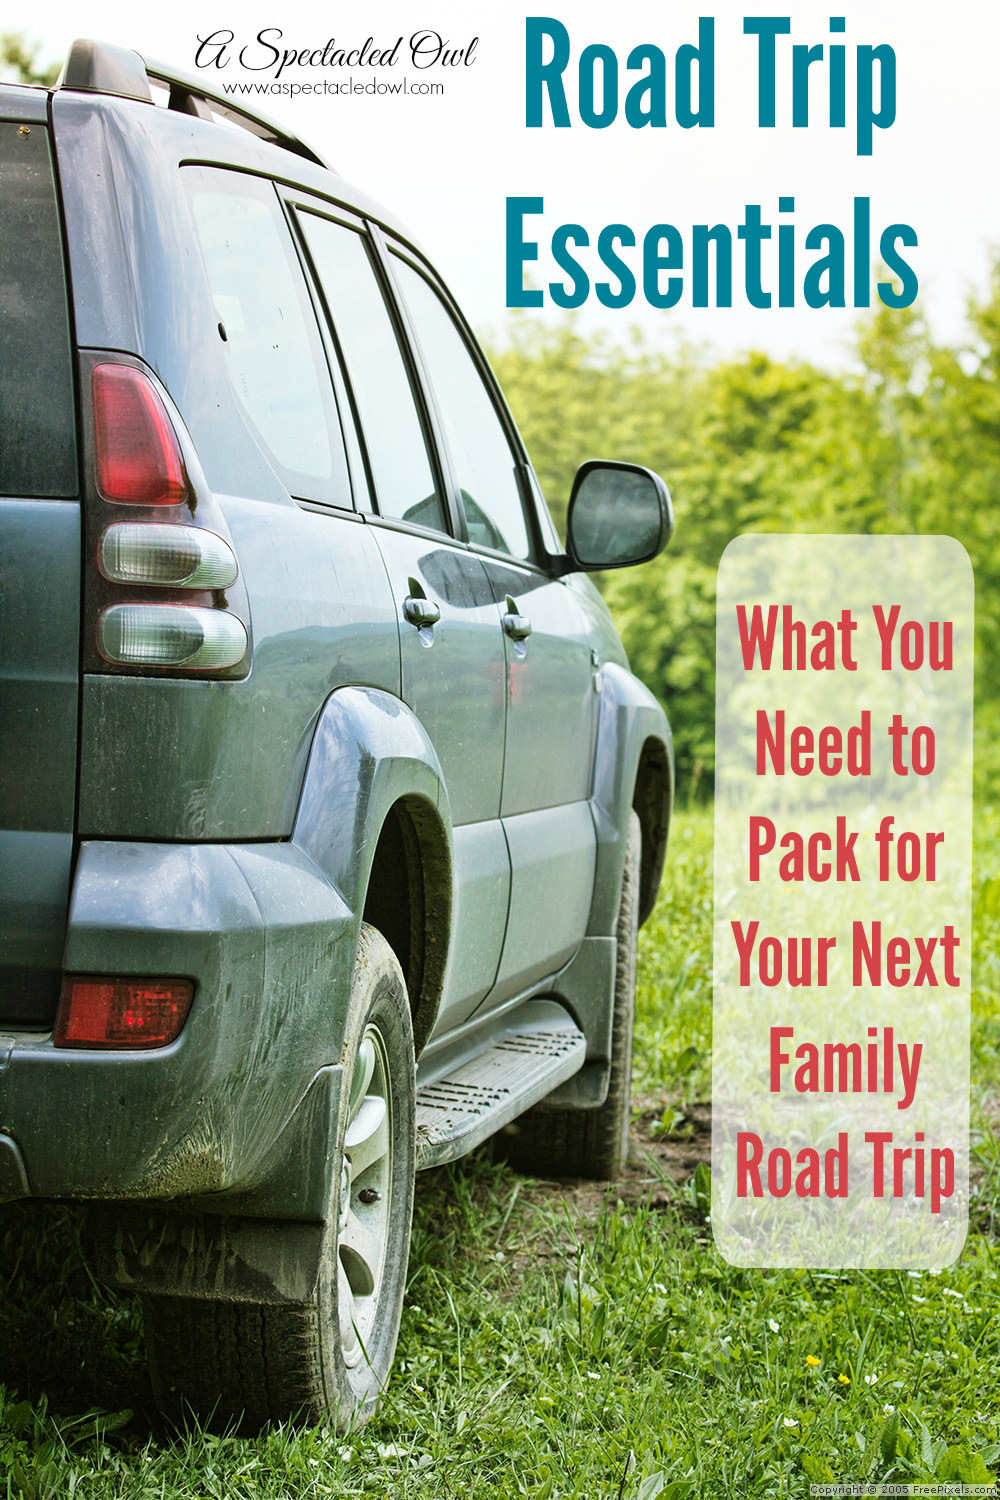 Here is a list of Road Trip Essentials to get you started so you don't forget anything important at home!